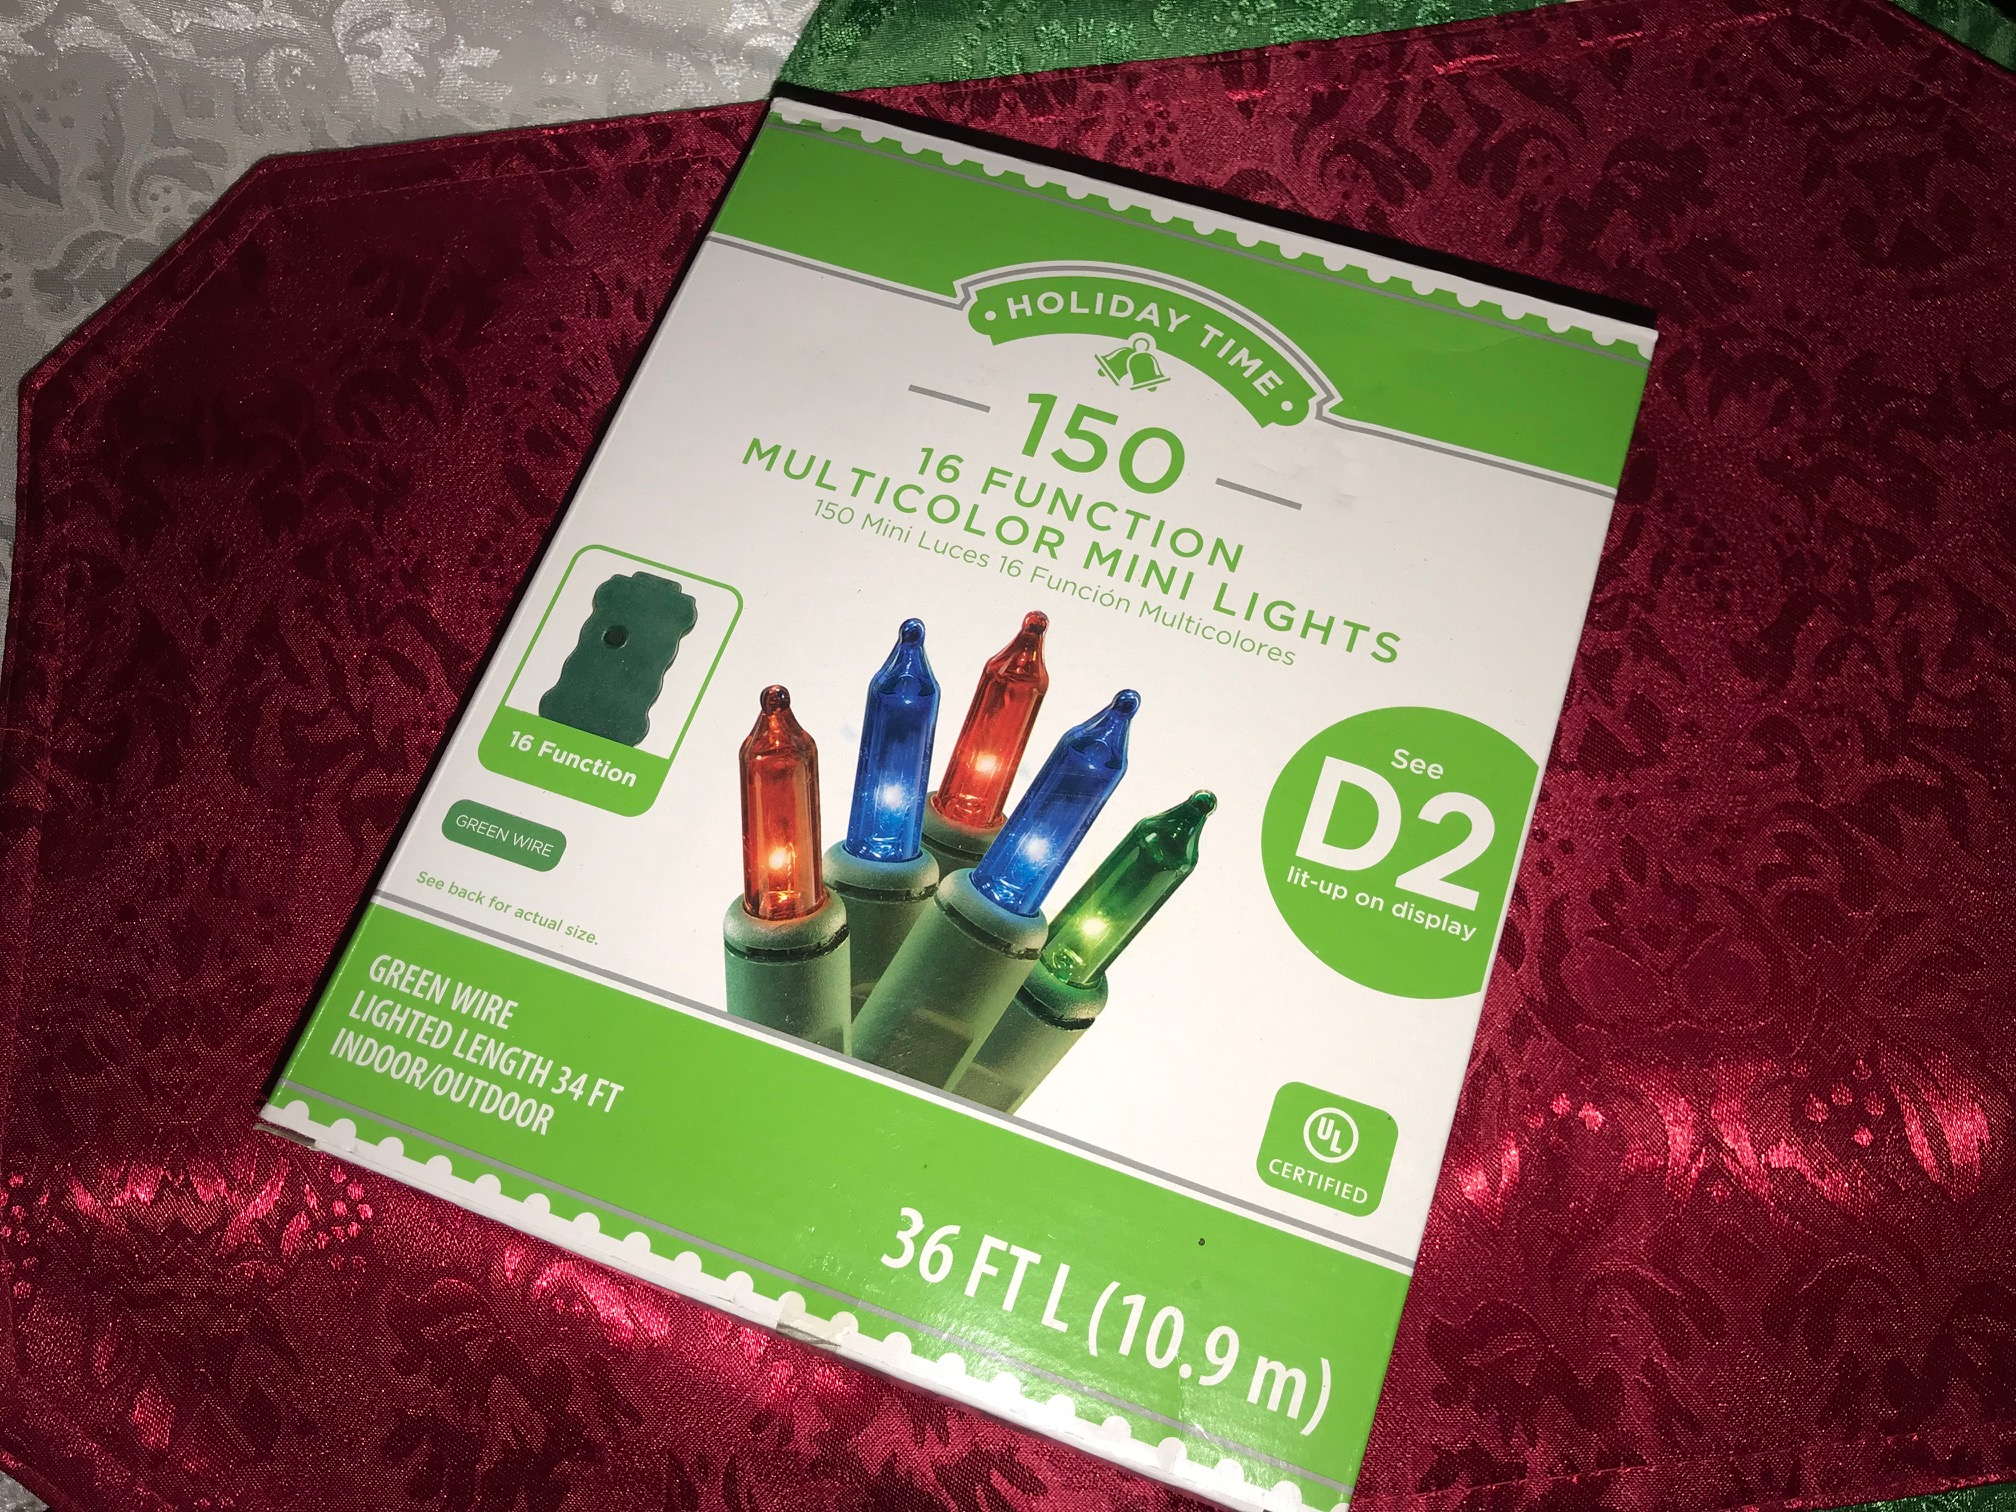 Walmart Holiday Time Plug In Christmas Lights With Green Wire Lead